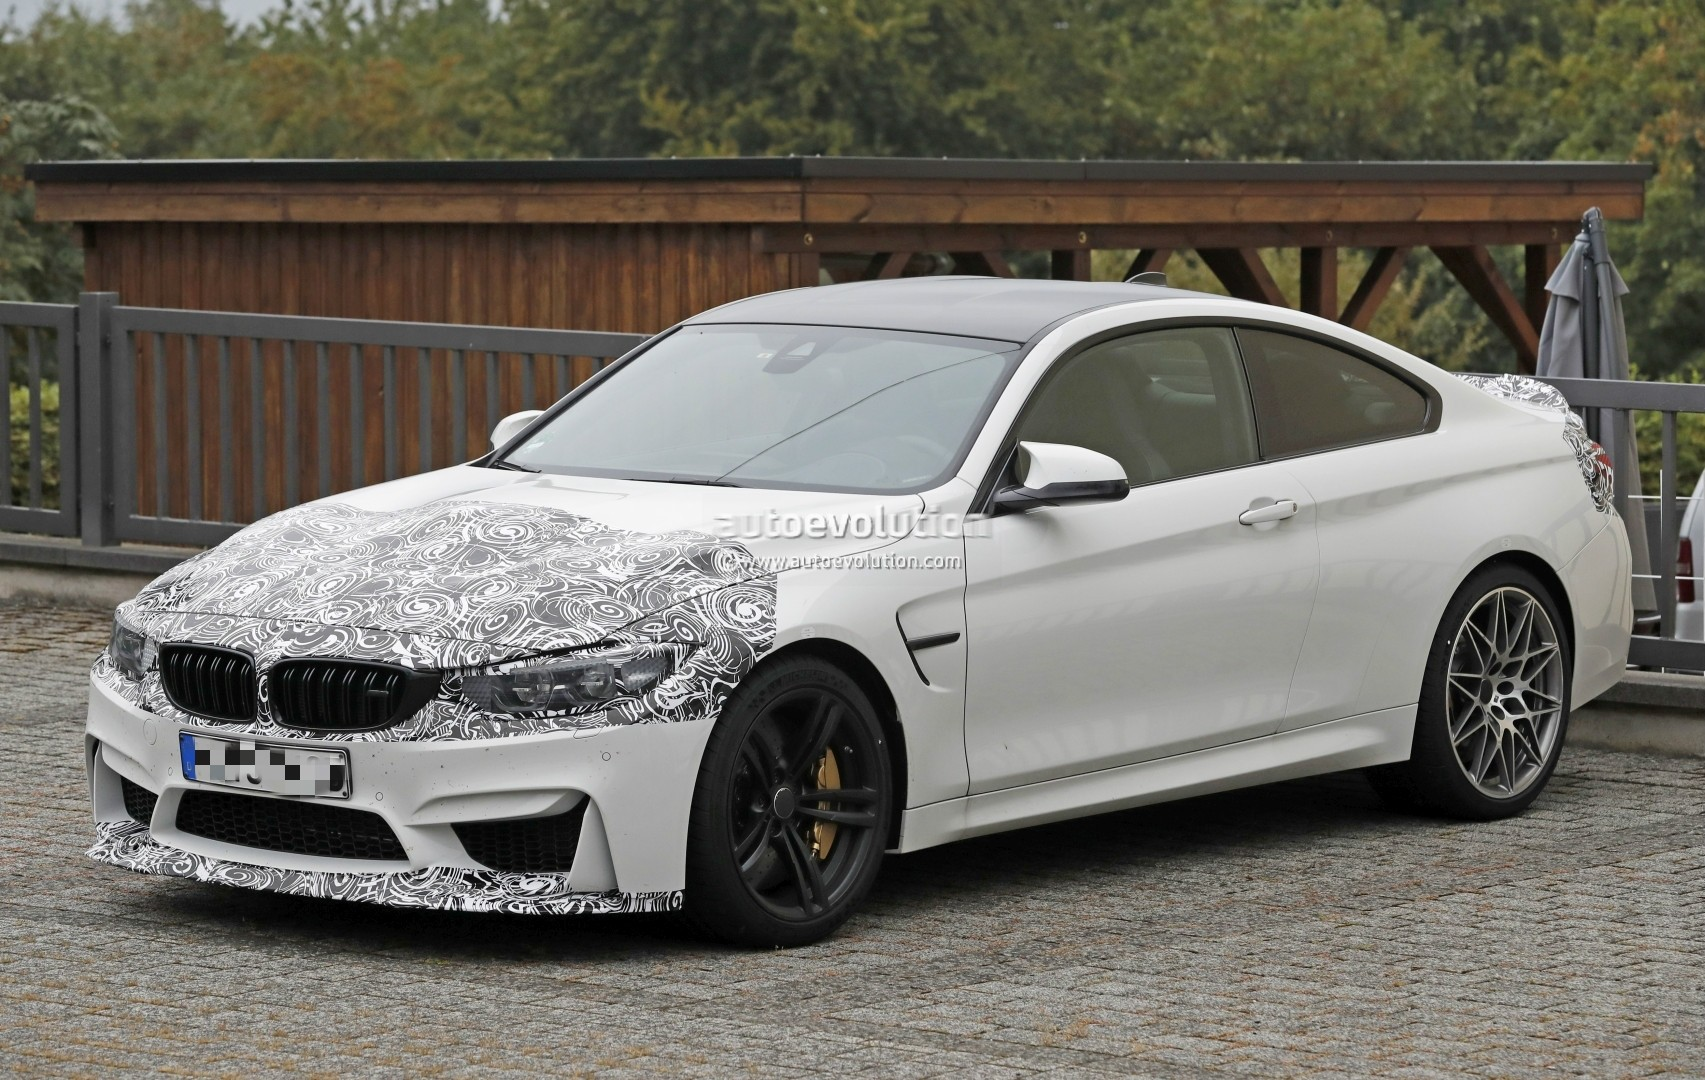 Bmw Serie 6 Gran Coupe 2018 >> 2018 BMW M4 Facelift CS Special Edition Spied, Shows Aggressive Aerodynamics - autoevolution